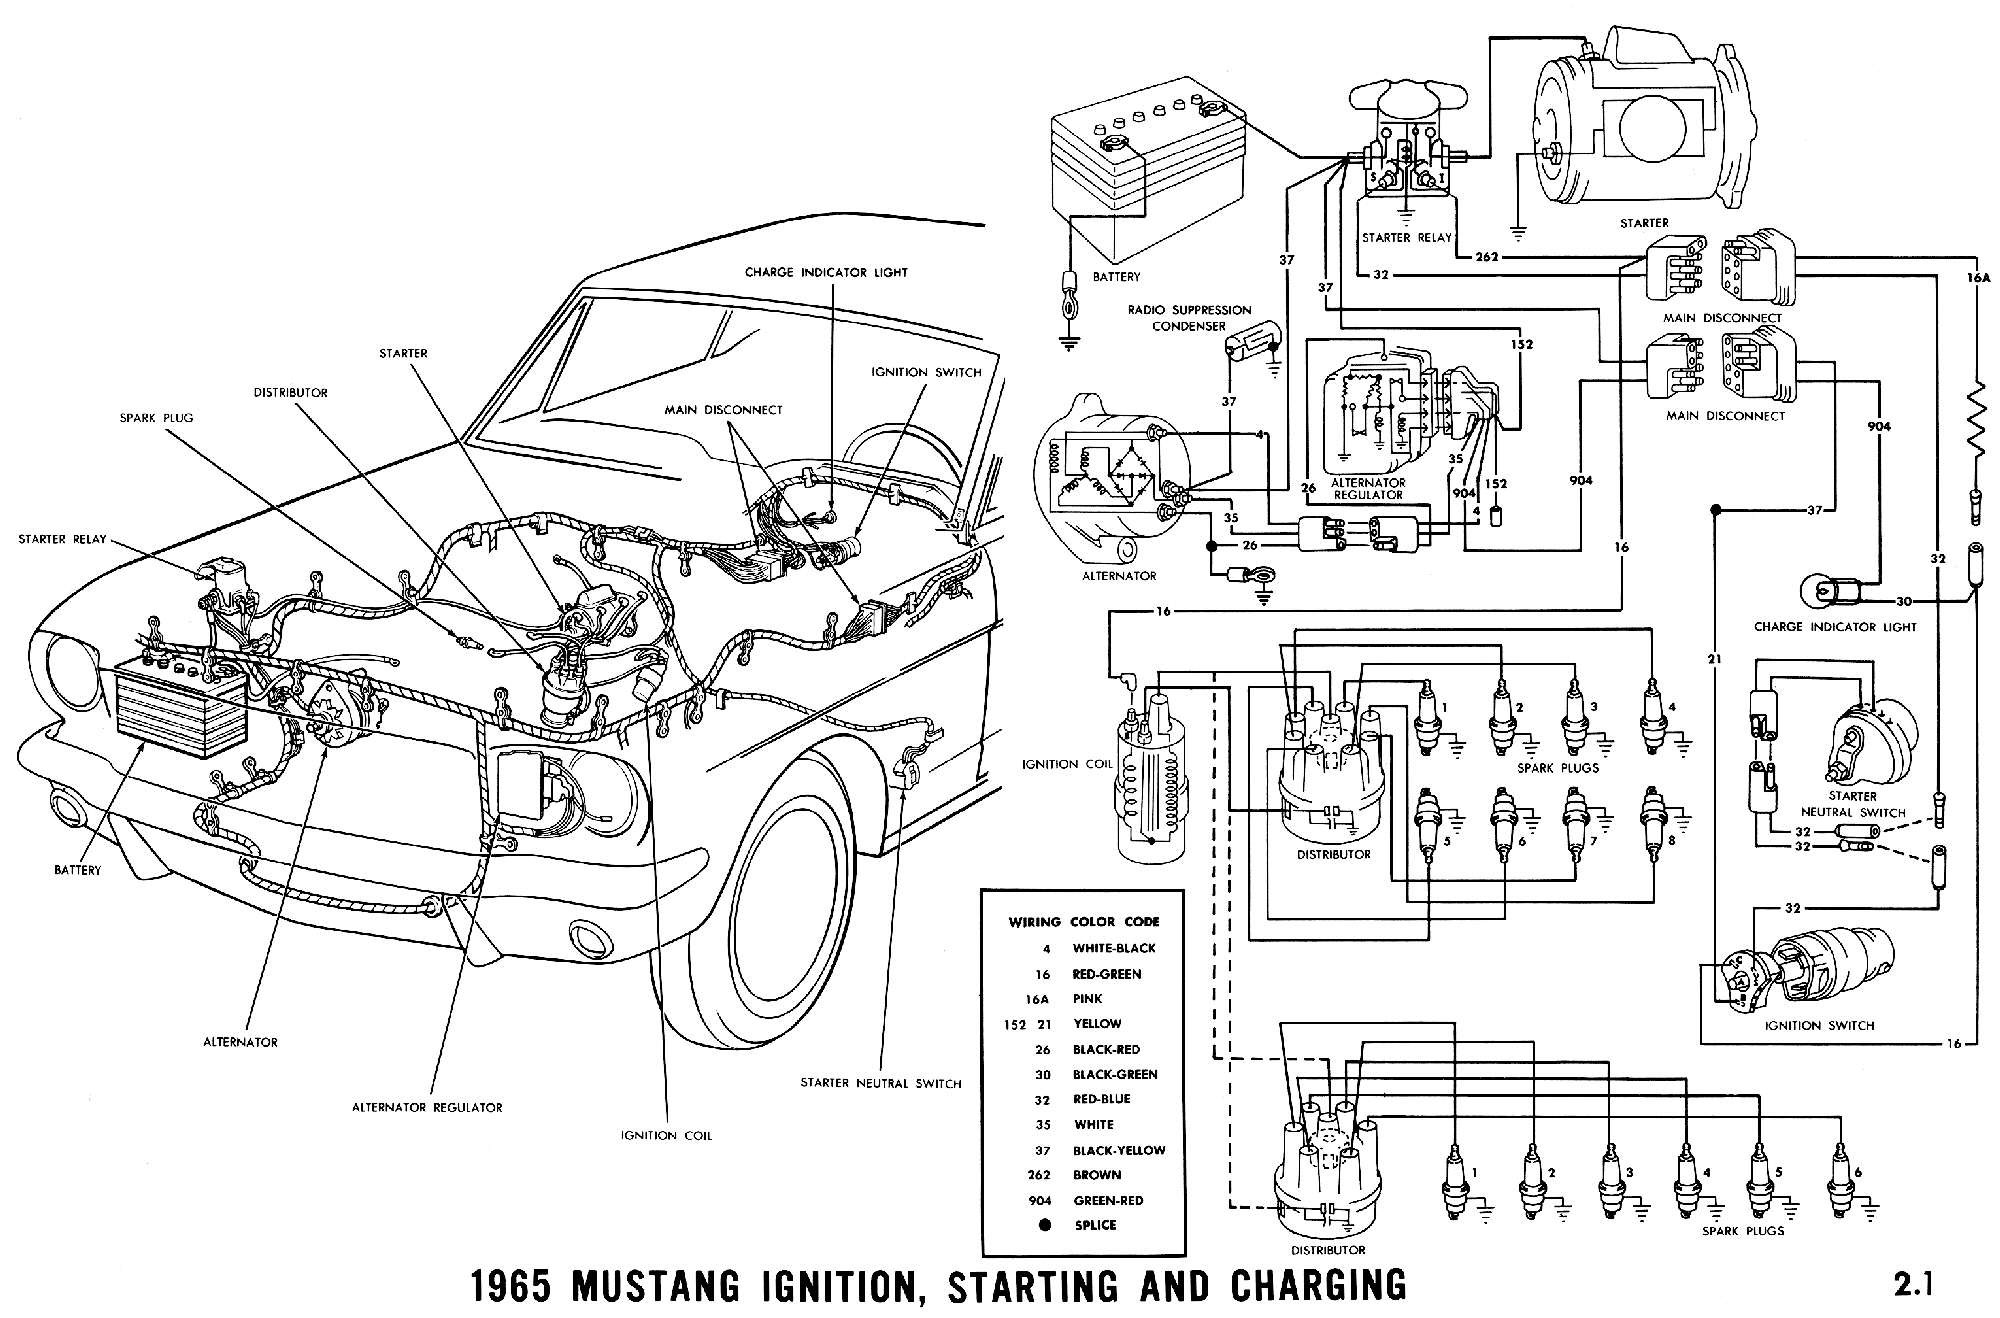 Engine Components Diagram 2015 Mustang Engine Diagram Engine Car Parts and Ponent Diagram Of Engine Components Diagram